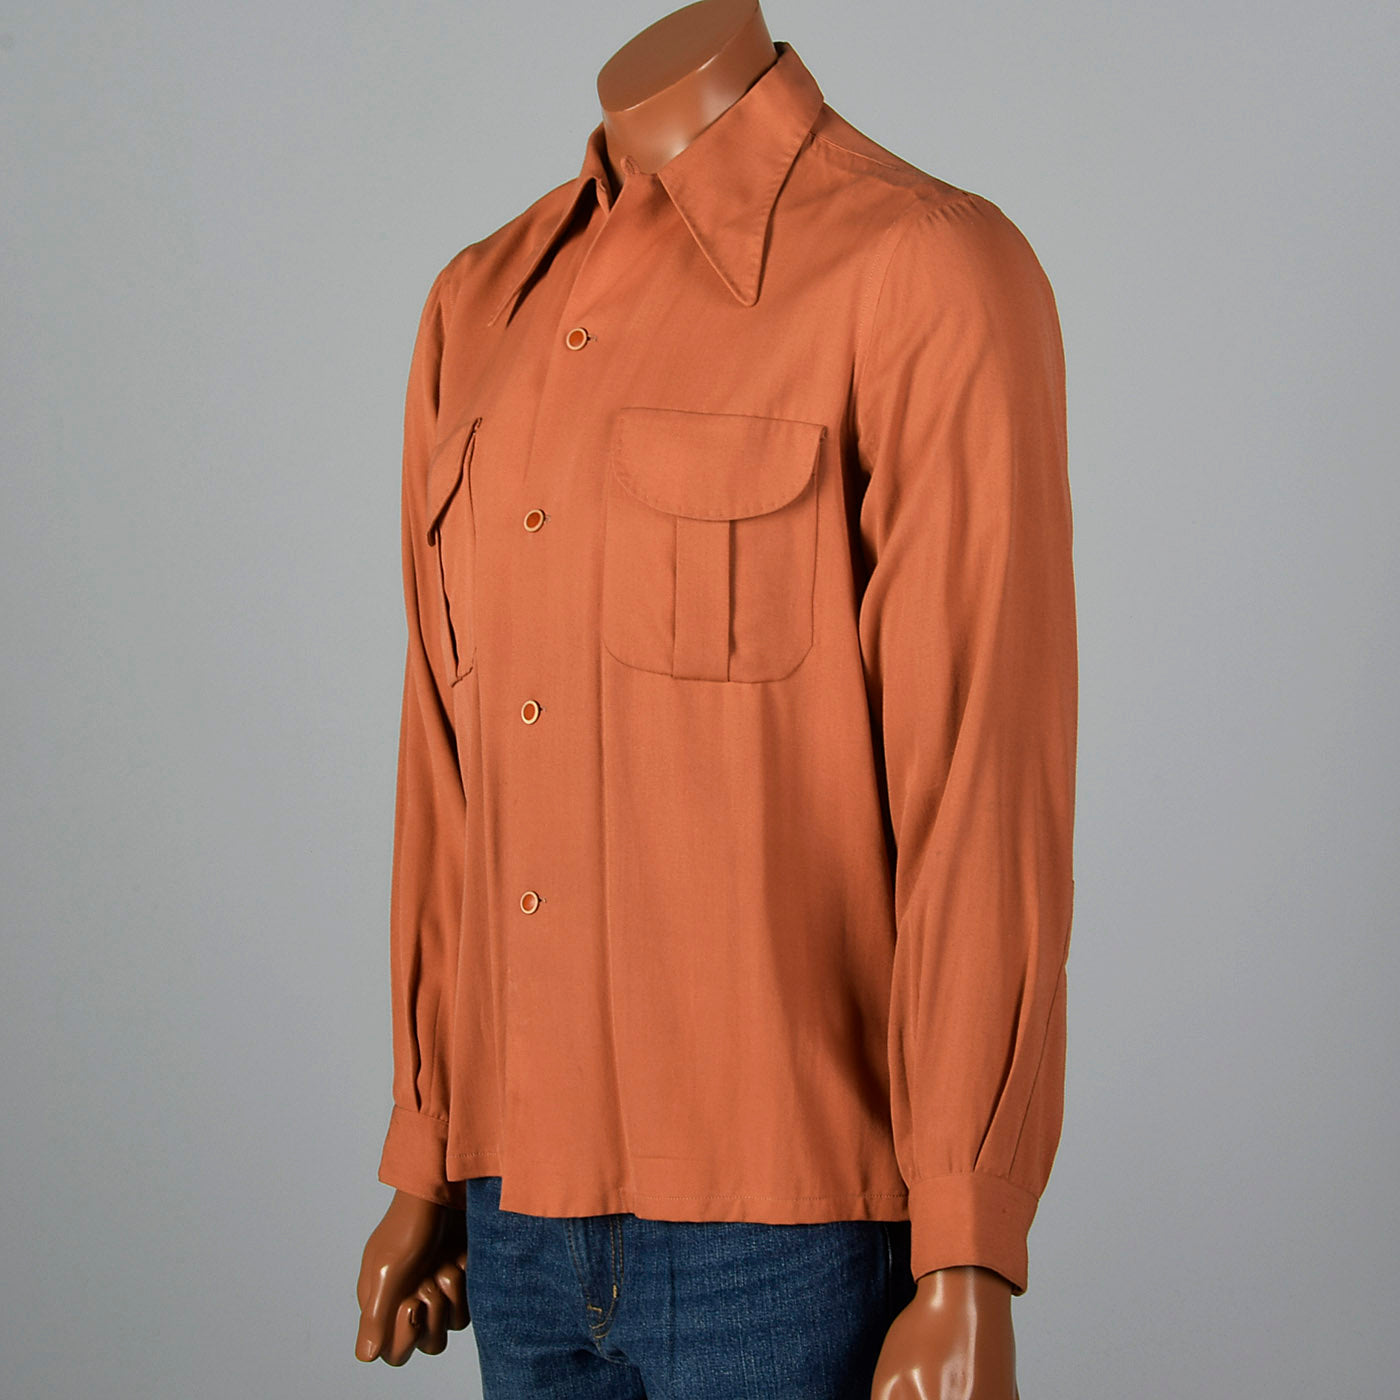 1940s Rust Shirt with Spearpoint Collar